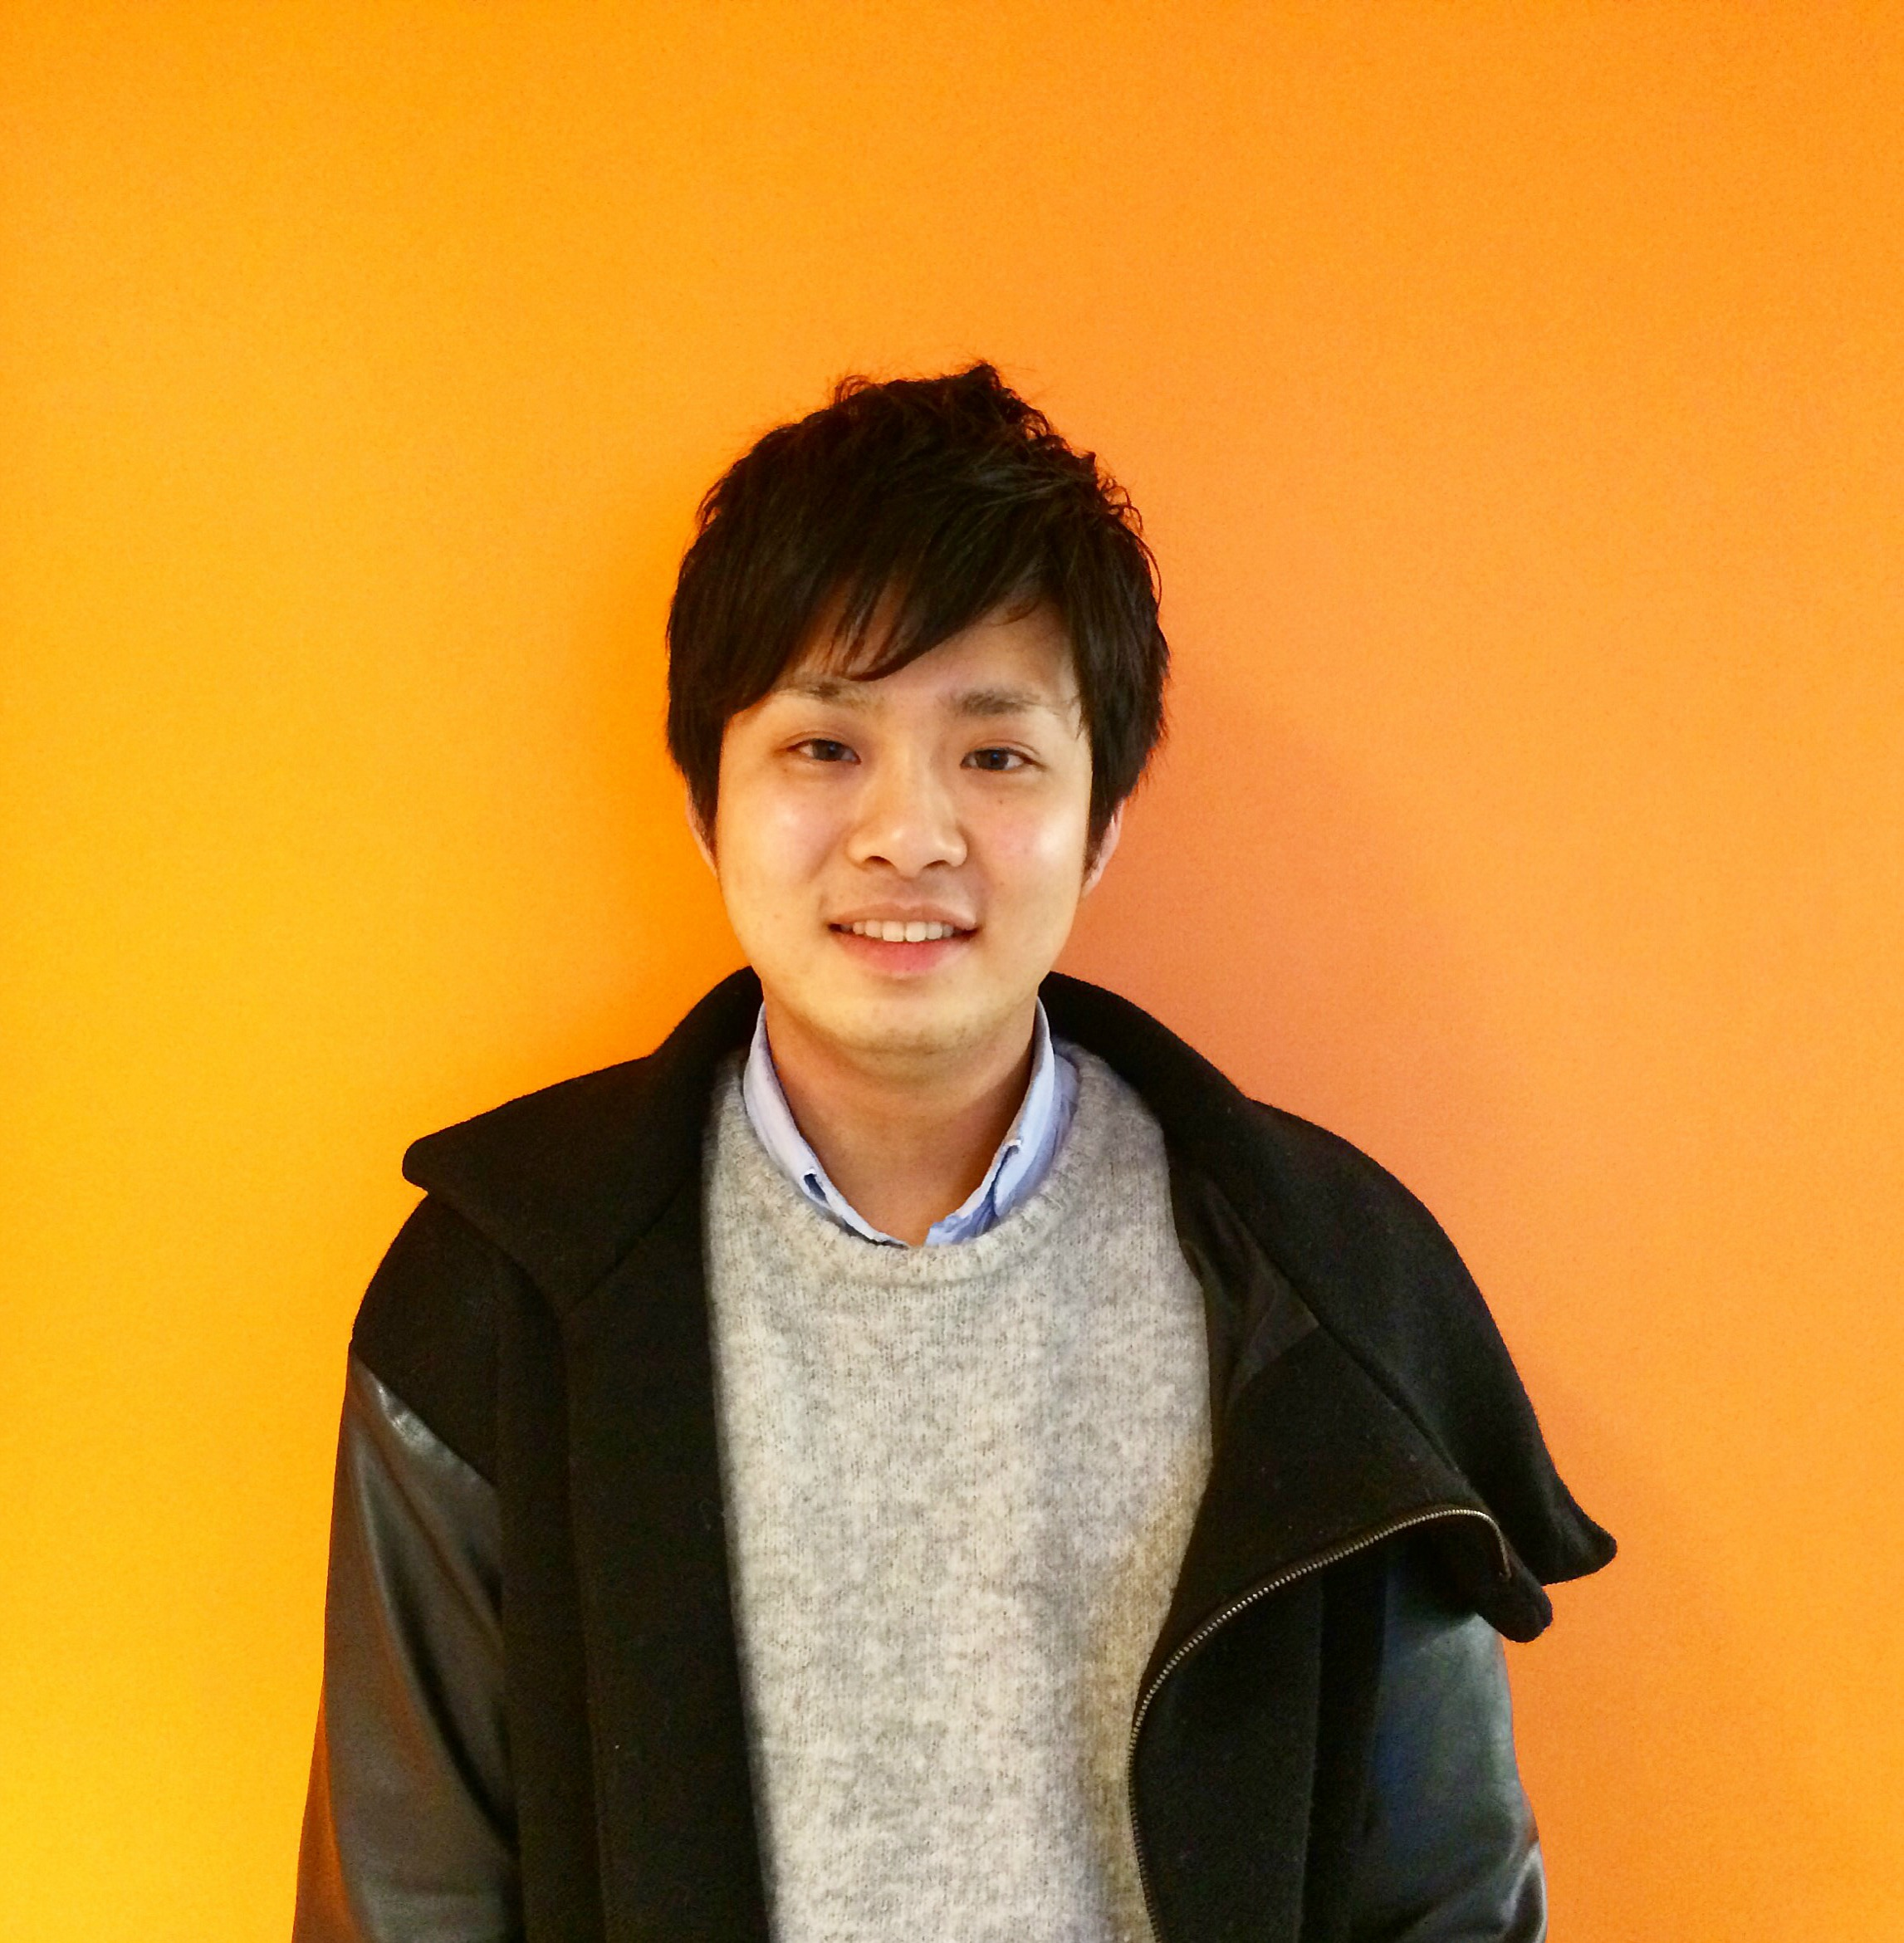 Takaaki Ikeda from Japan Shares his EC Boston Experience